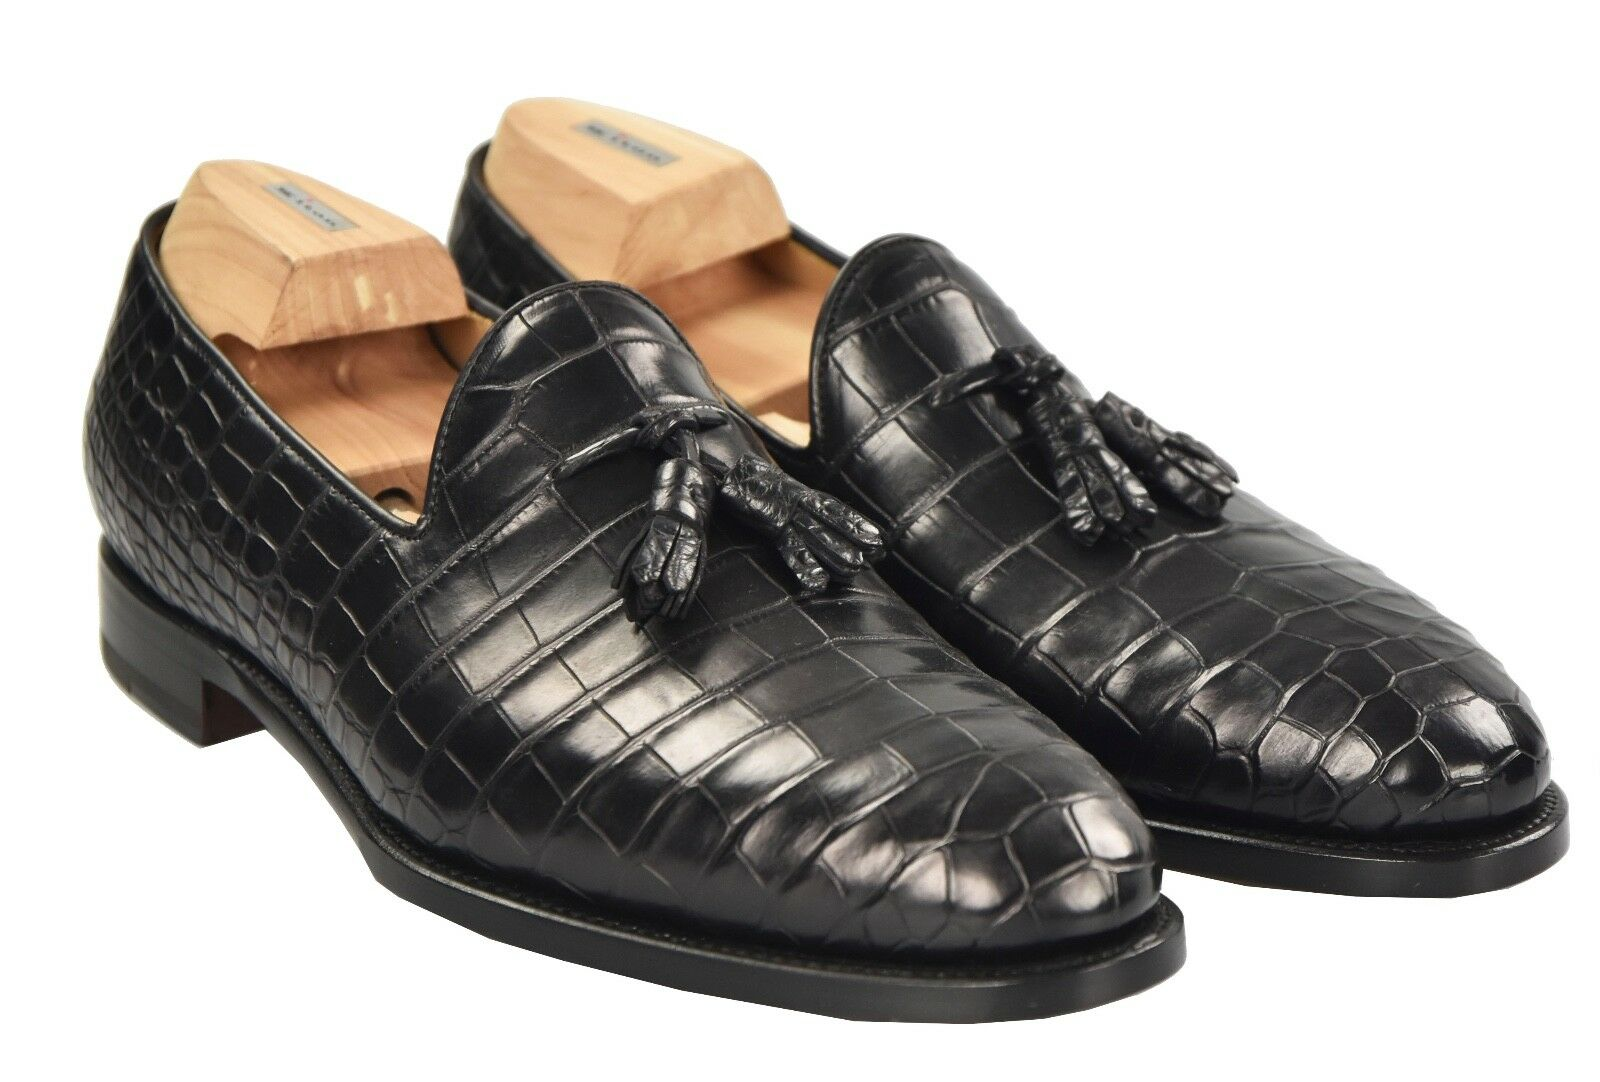 NEW KITON NAPOLI SHOES 100% LEATHER CROCODILE SIZE 10 US 43 KSC23